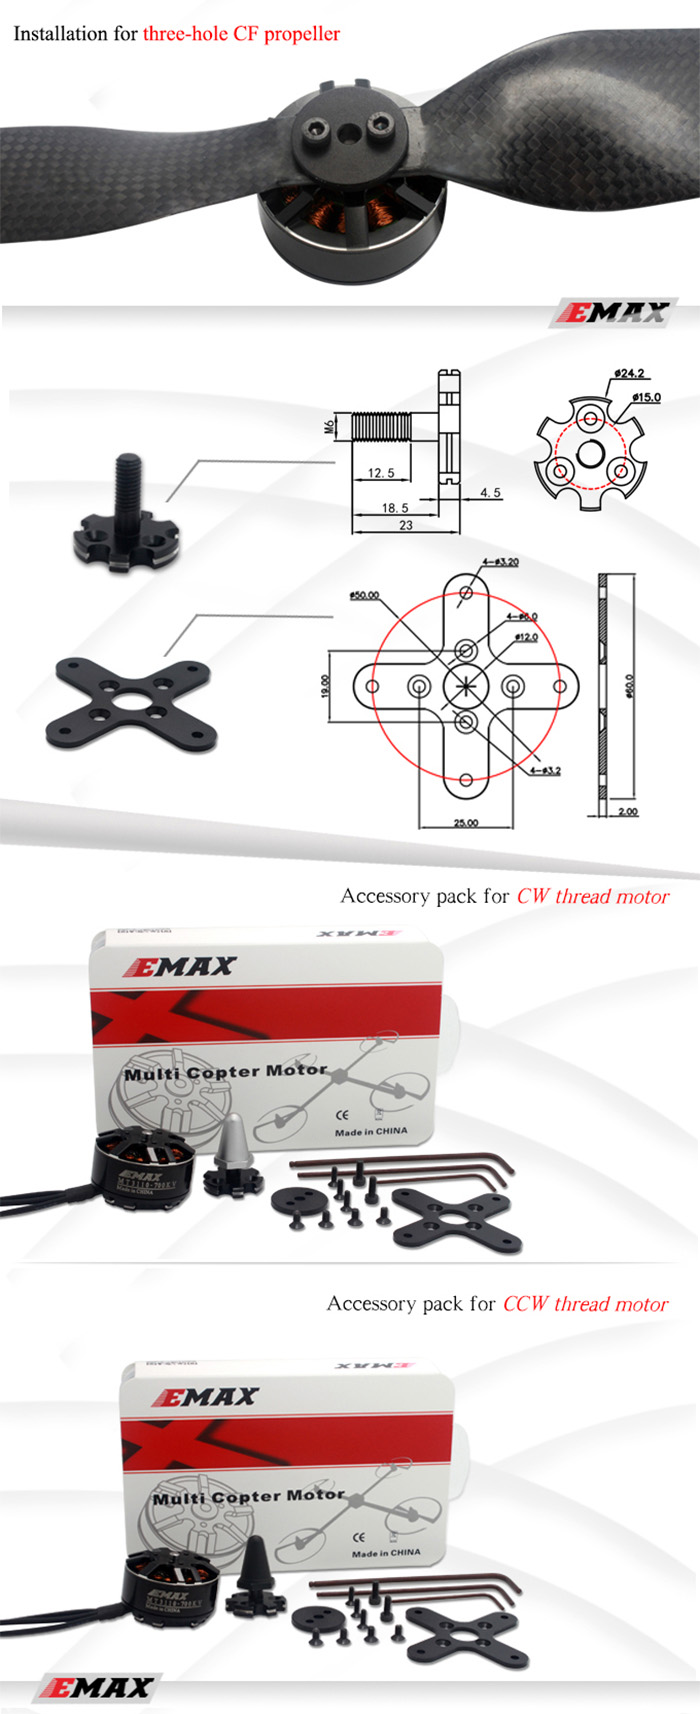 EMAX MT Series MT3110 700KV Brushless No - Brush Multi Copters Motor for Multi-rotor Quadcopter